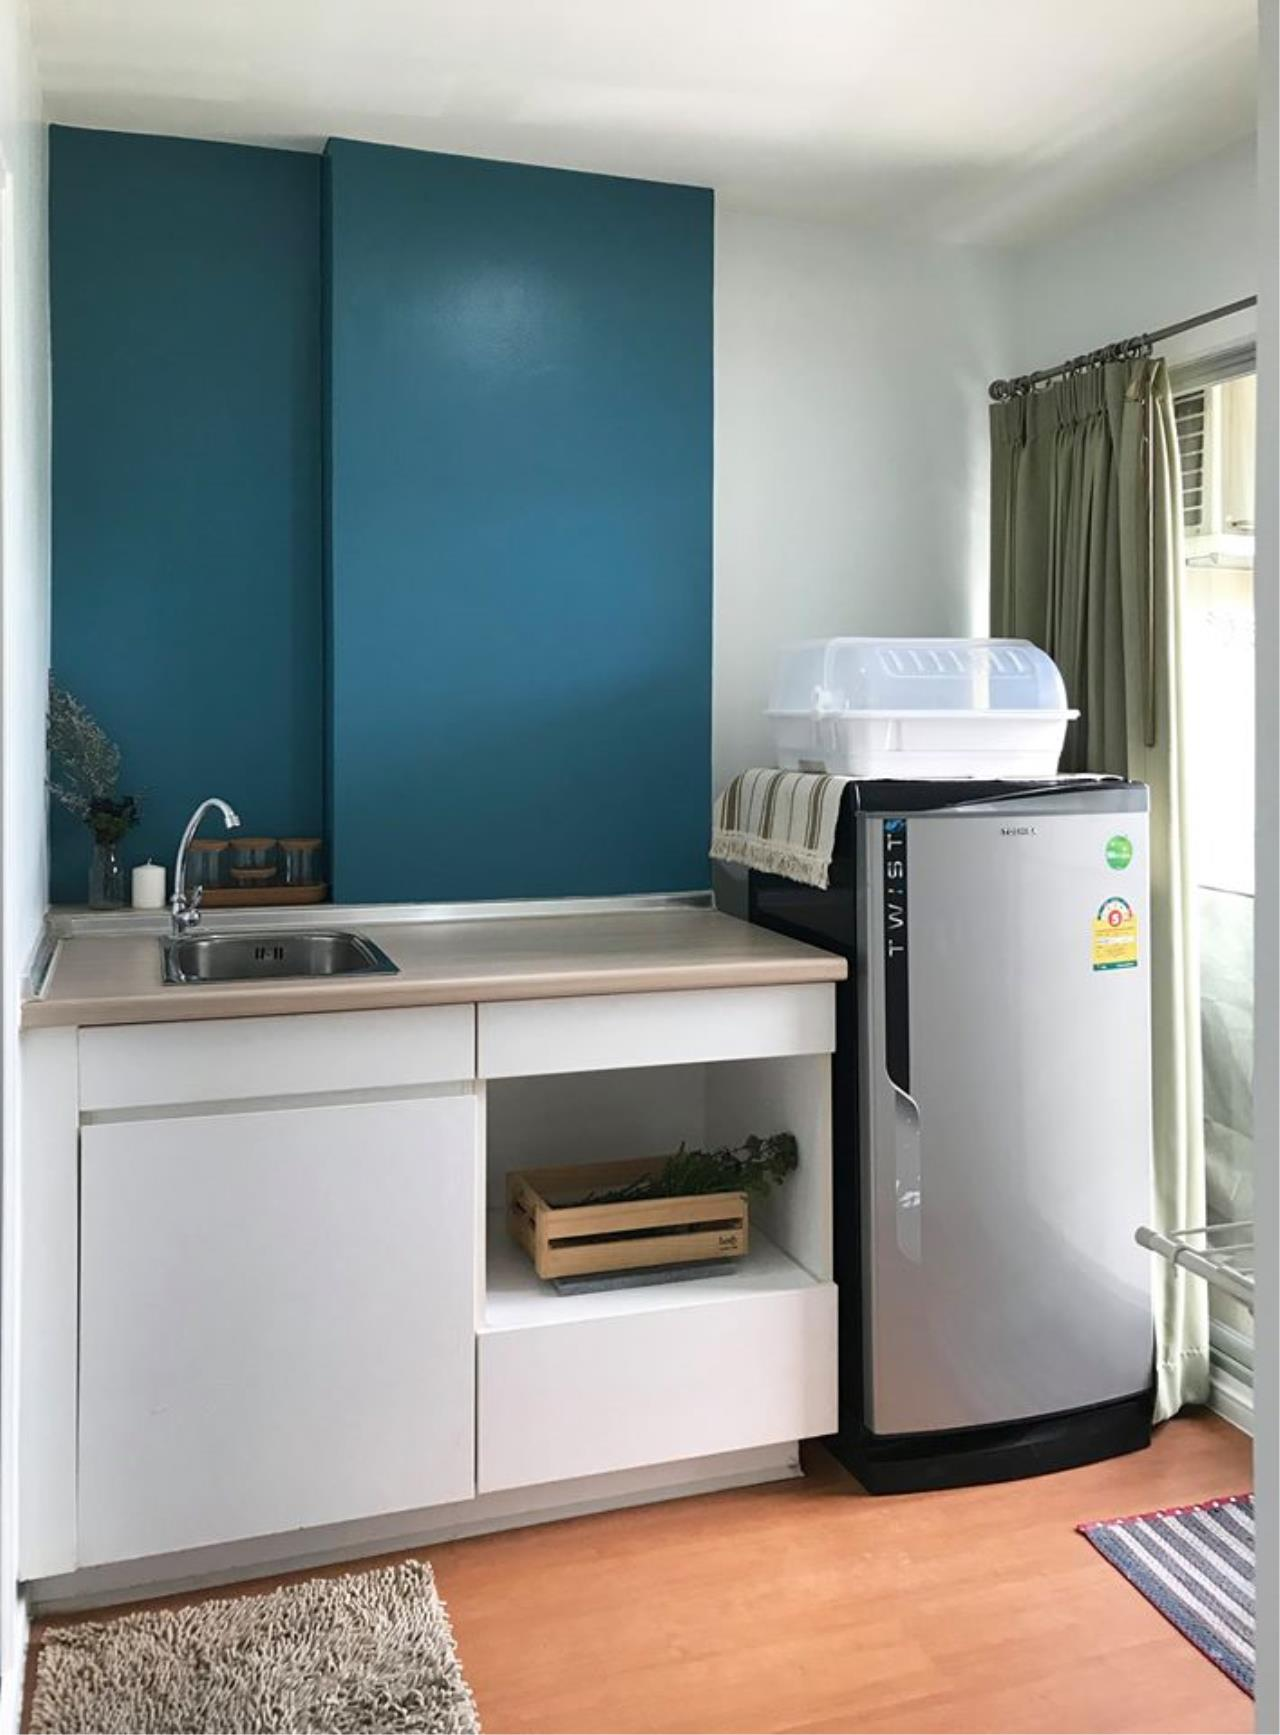 Agent Thawanrat Agency's Condo for rental LUMPINI CONDOTOWN NIDA – SEREETHAI 1 bedroom,1 bathroom. size 23 sqm.Floor 32 th. fully furnished Ready to move in 6